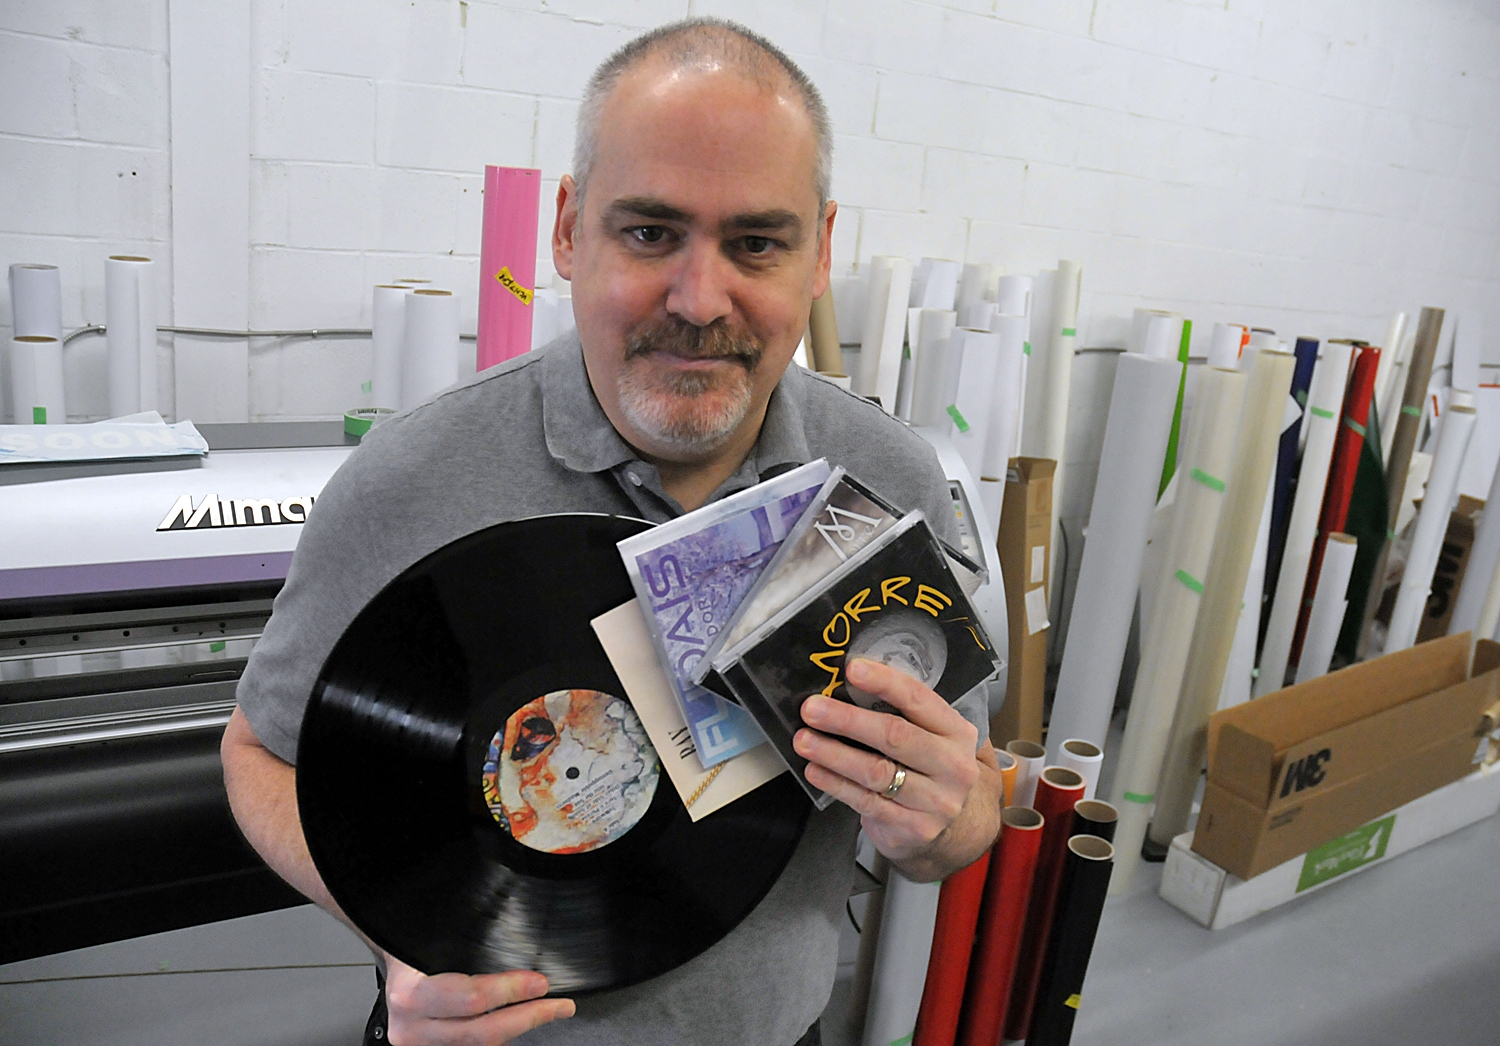 Derek Armstrong of Blu Monster Print and Media shows off just a few of the many albums he's printed over the years.